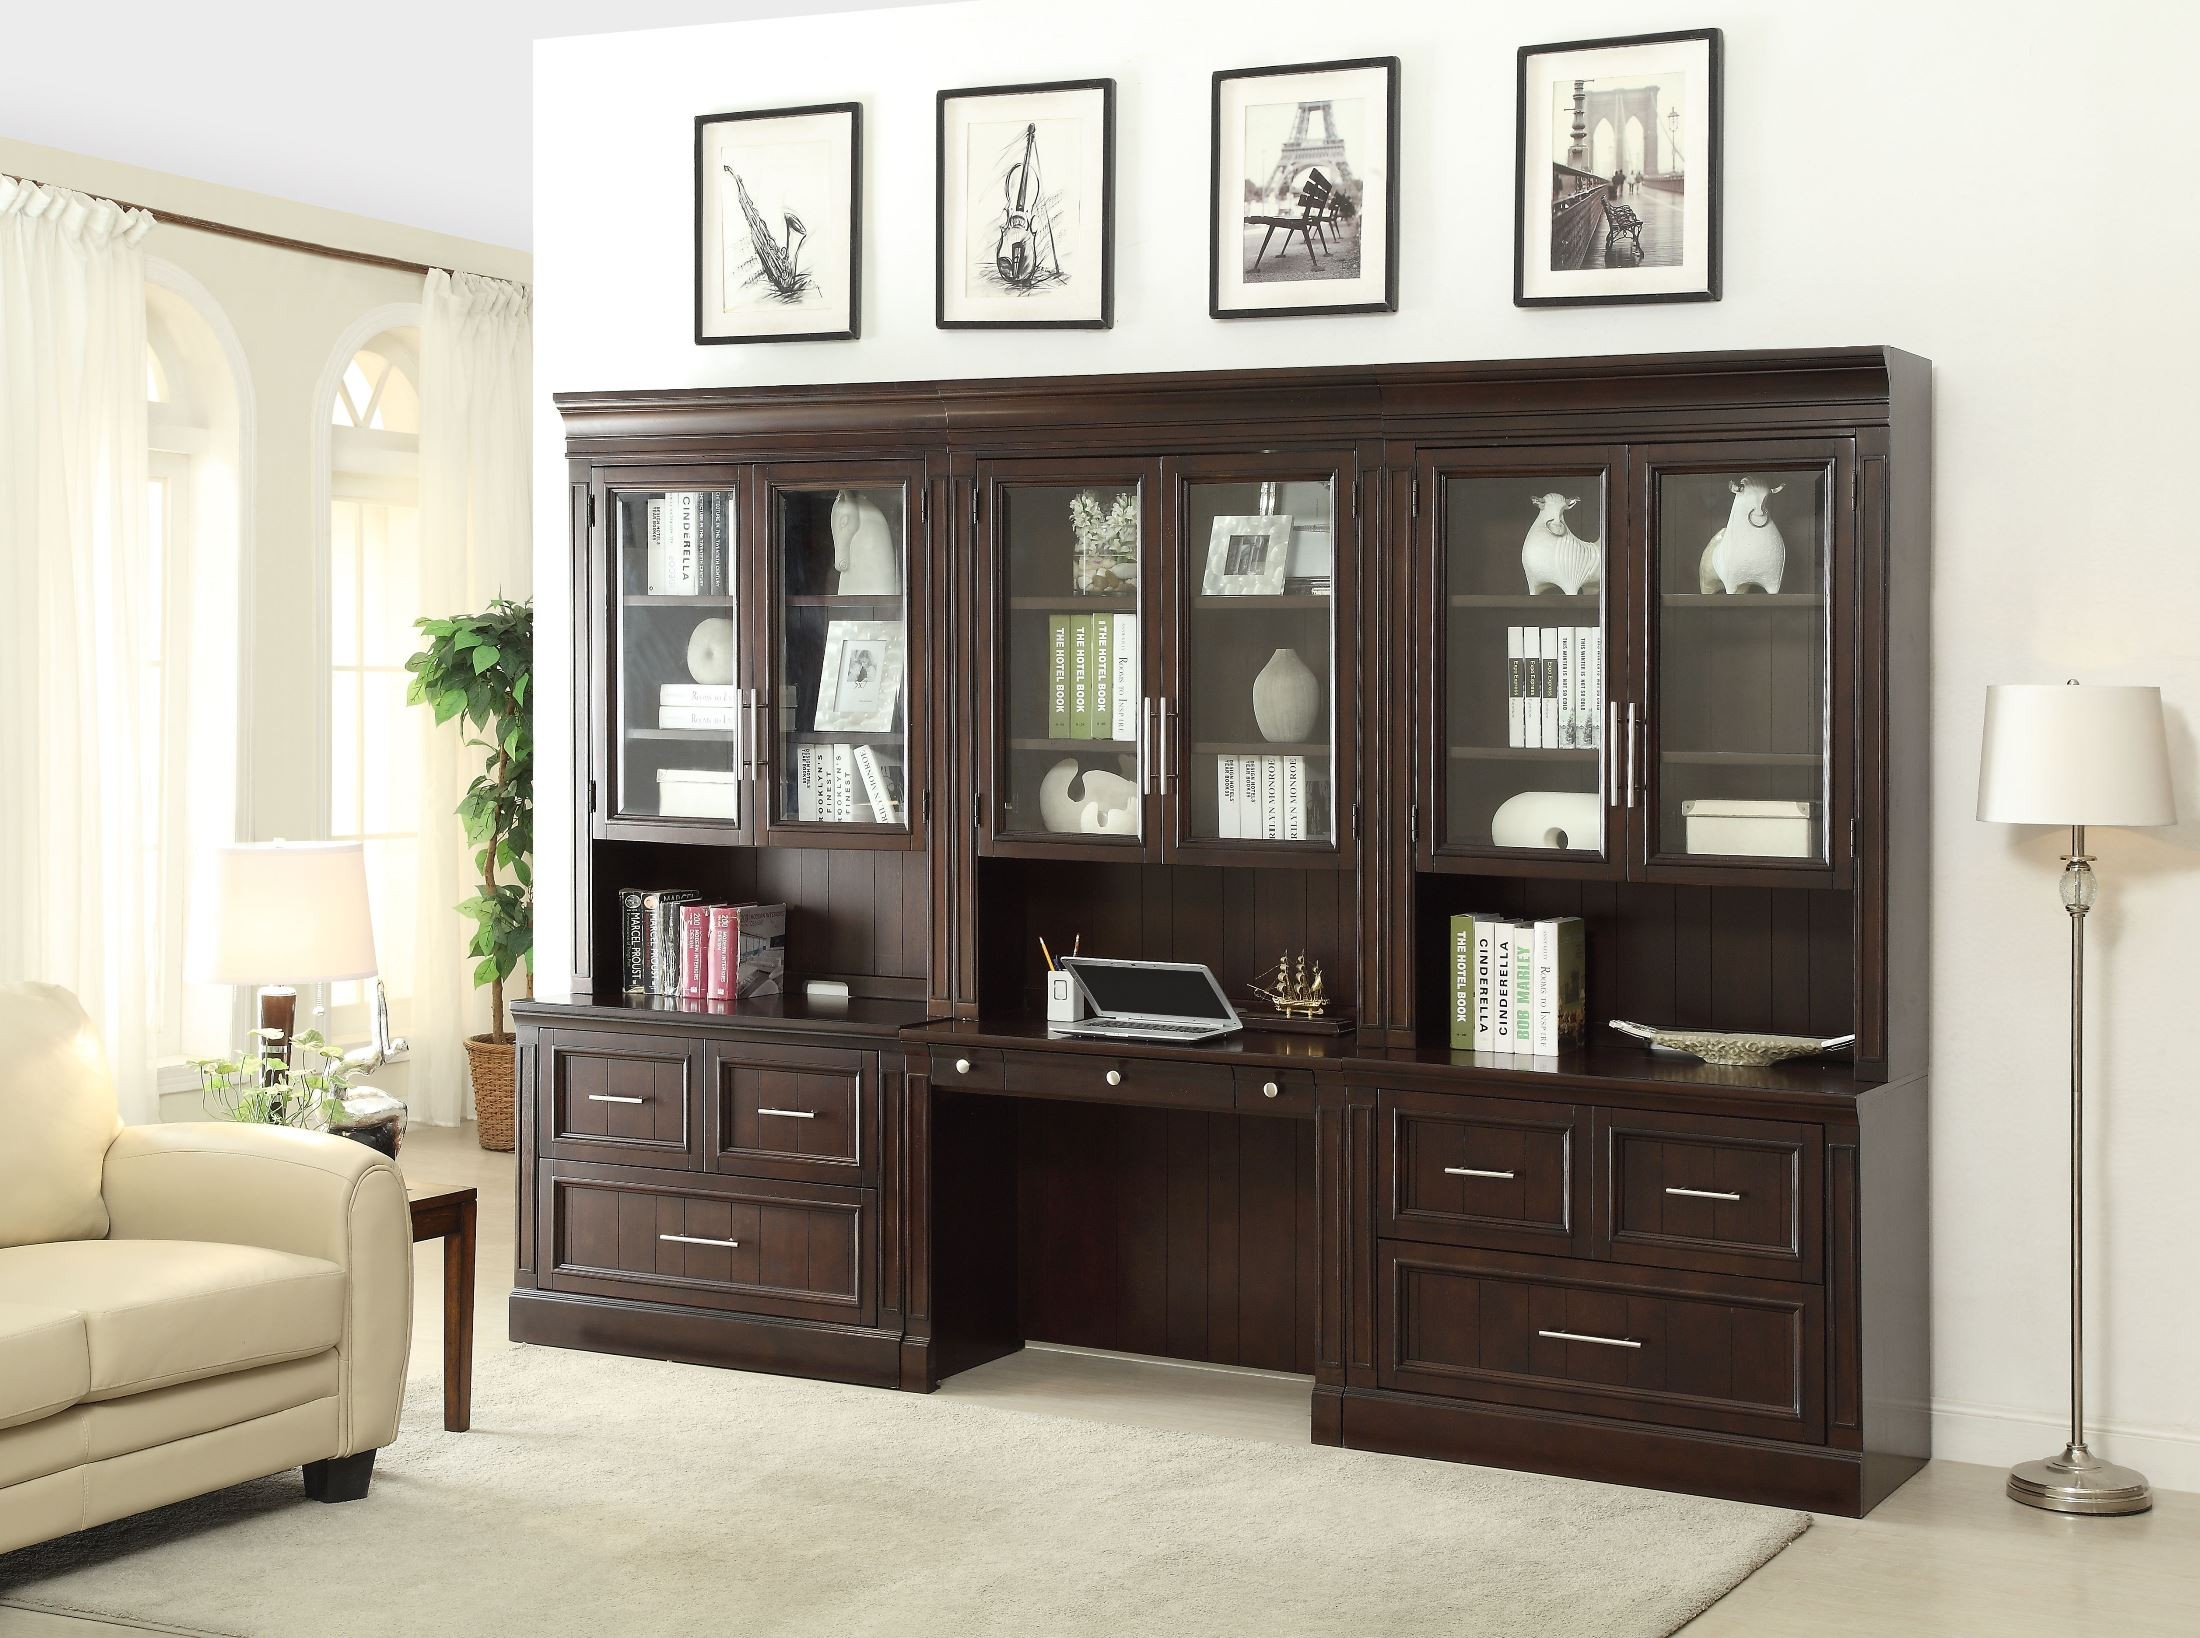 Stanford Library Desk Wall Unit from Parker House STA 476 2 2